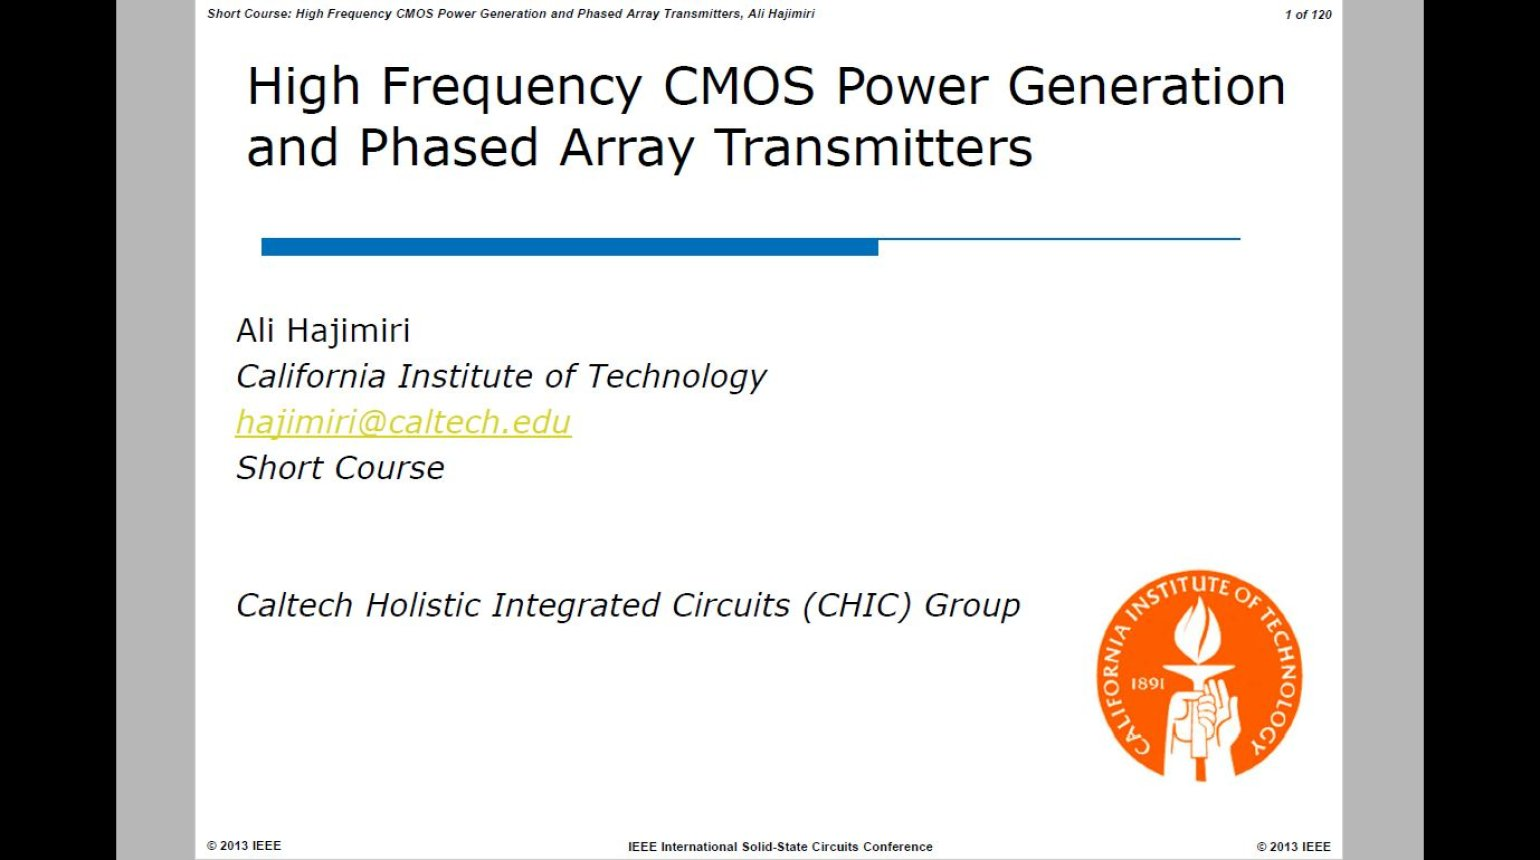 High Frequency CMOS Power Generation and Phased Array Transmitters Video